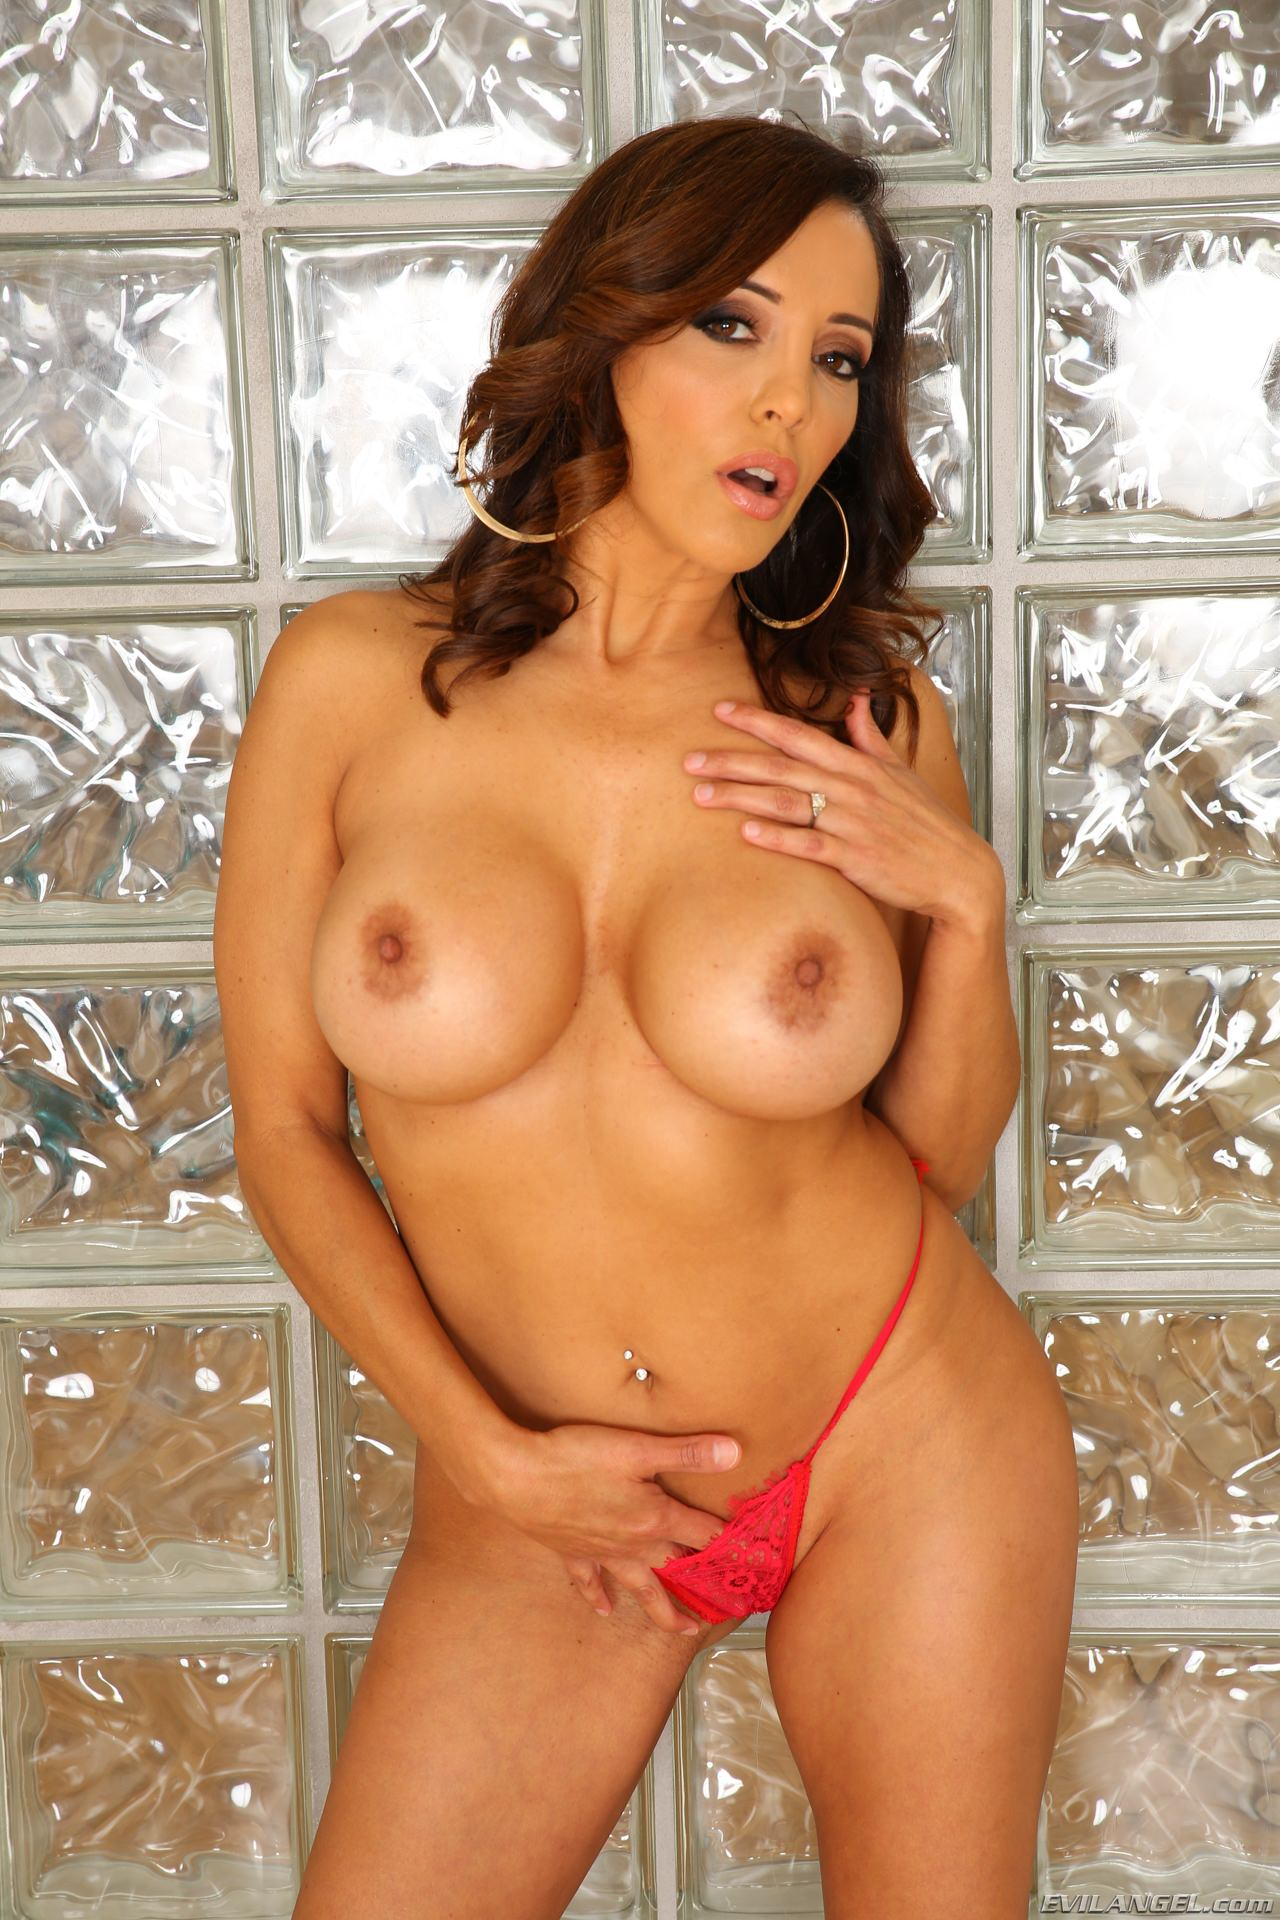 Evil Angel 'Is A HotWife 3' starring Francesca Le (Photo 10)